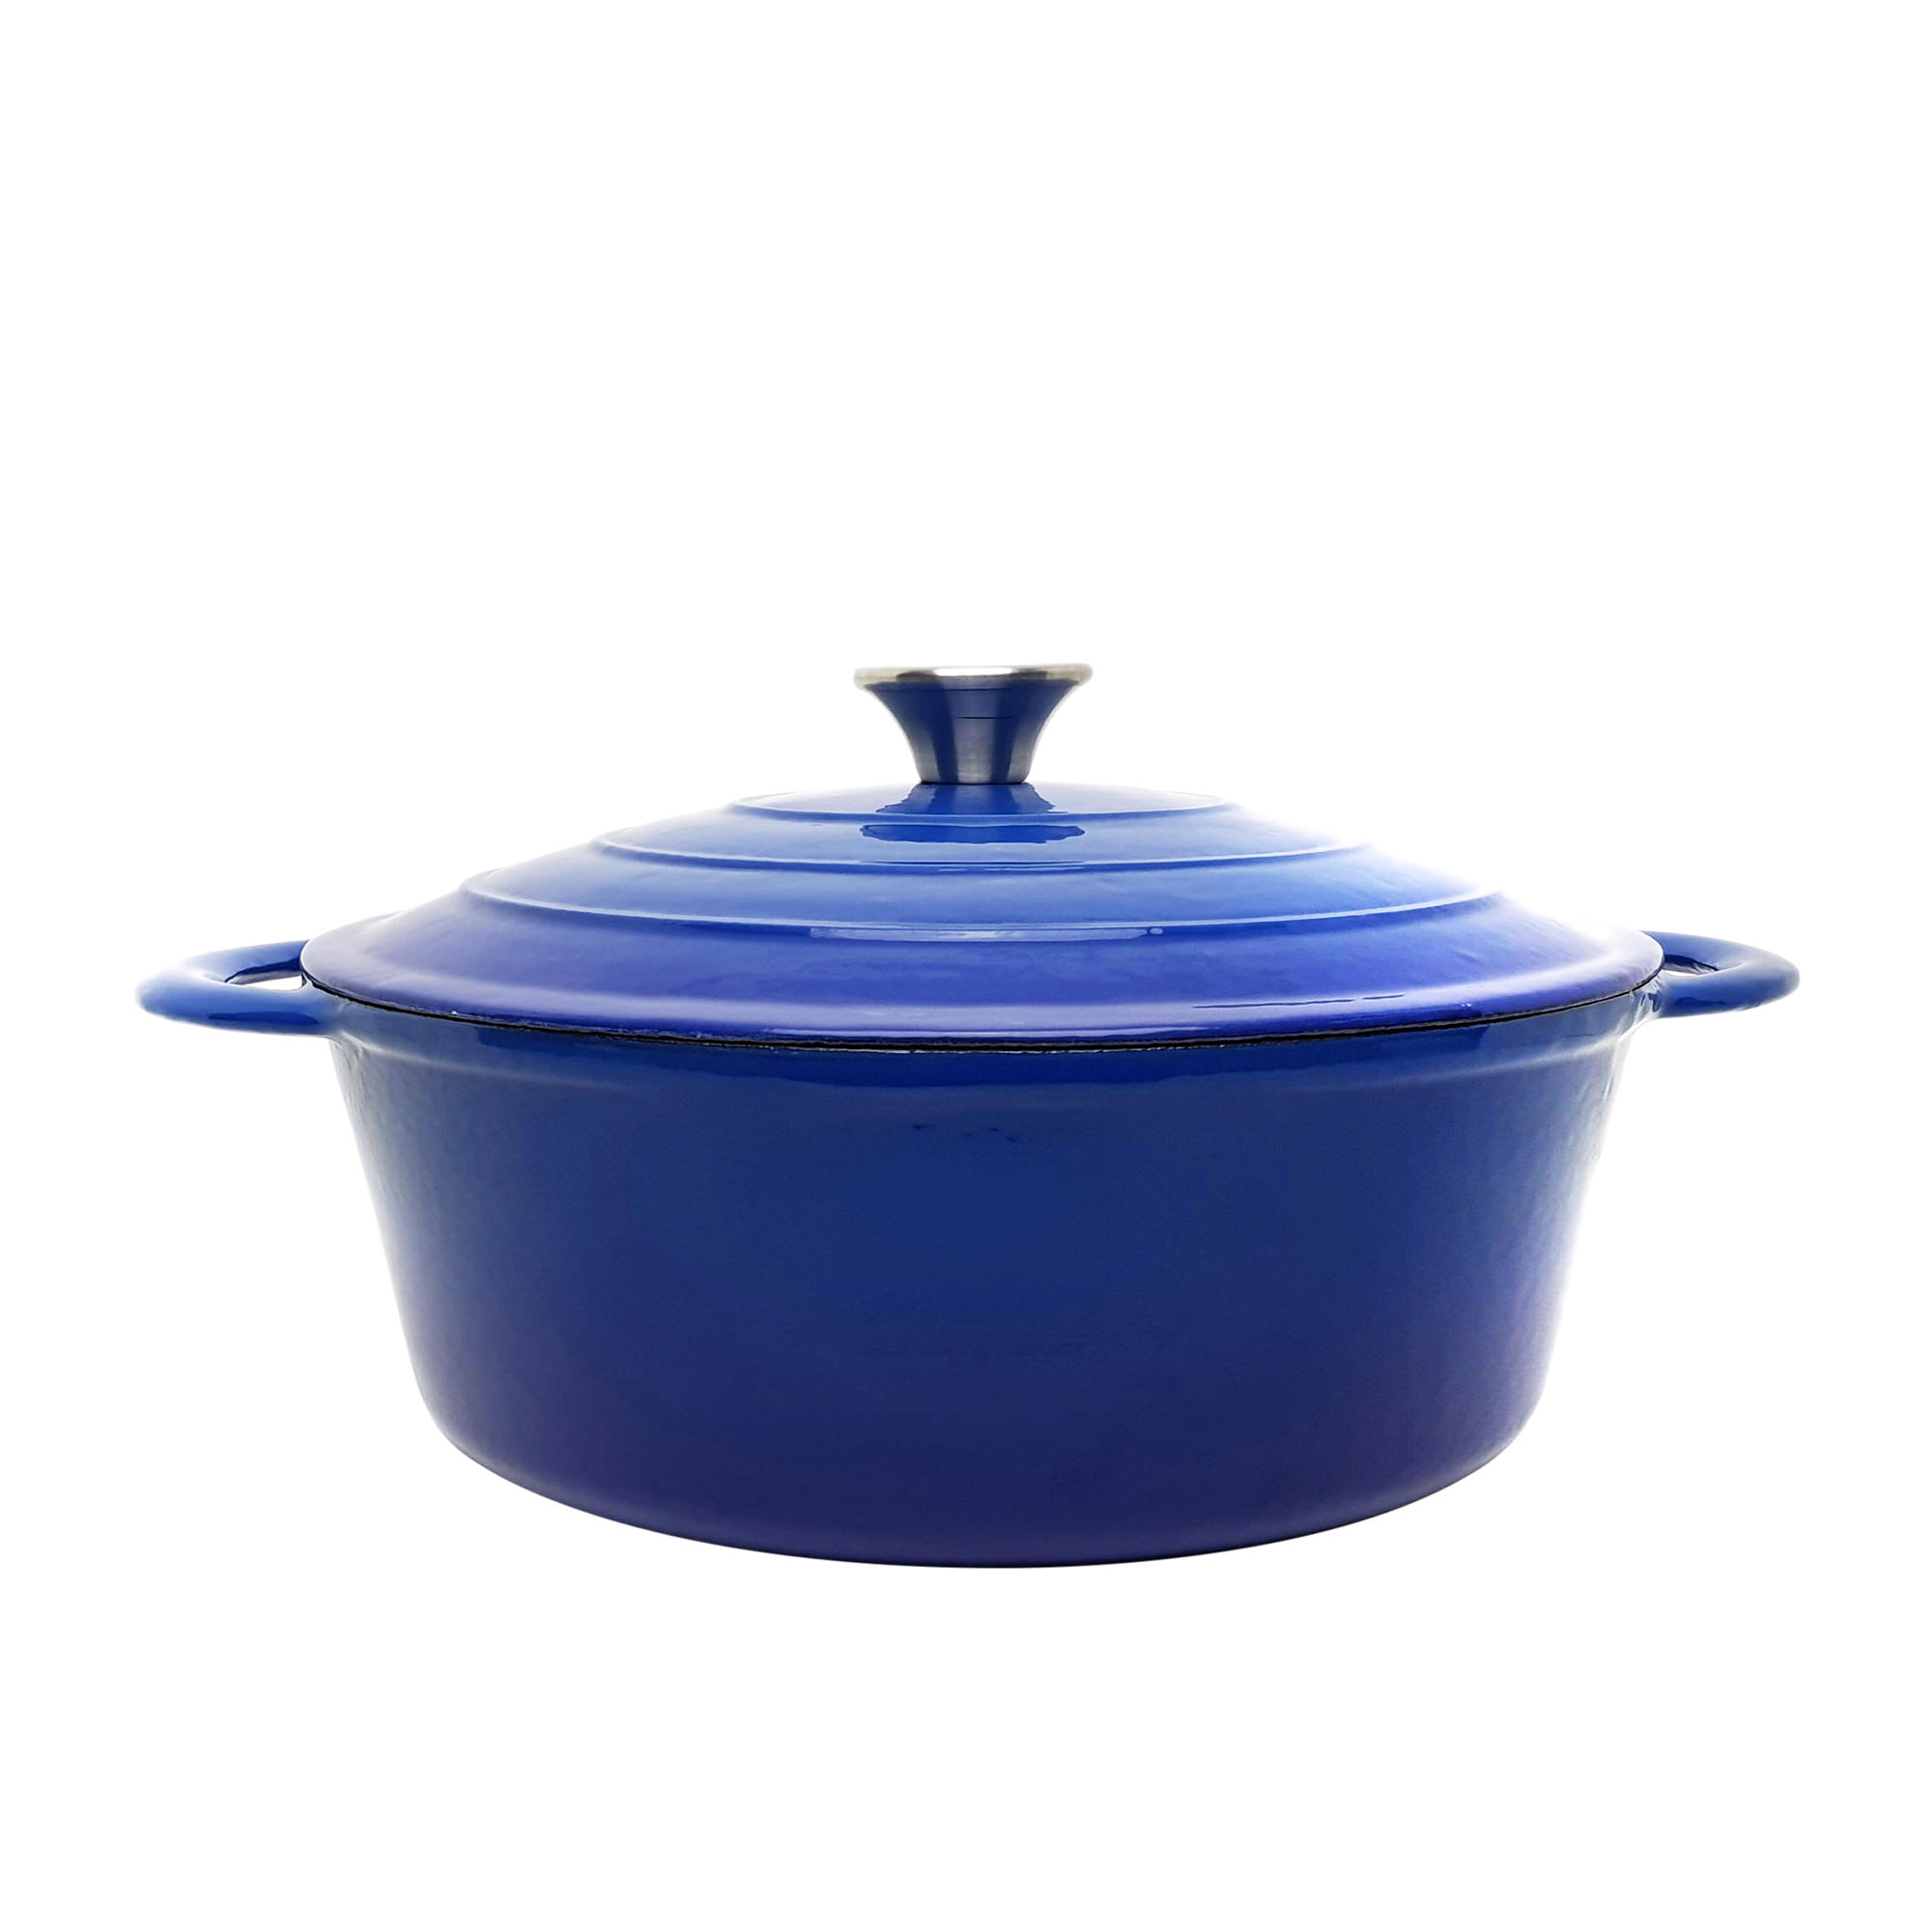 Classica Round Enamelled Cast Iron Dutch Oven 28cm - 6.6L Blue